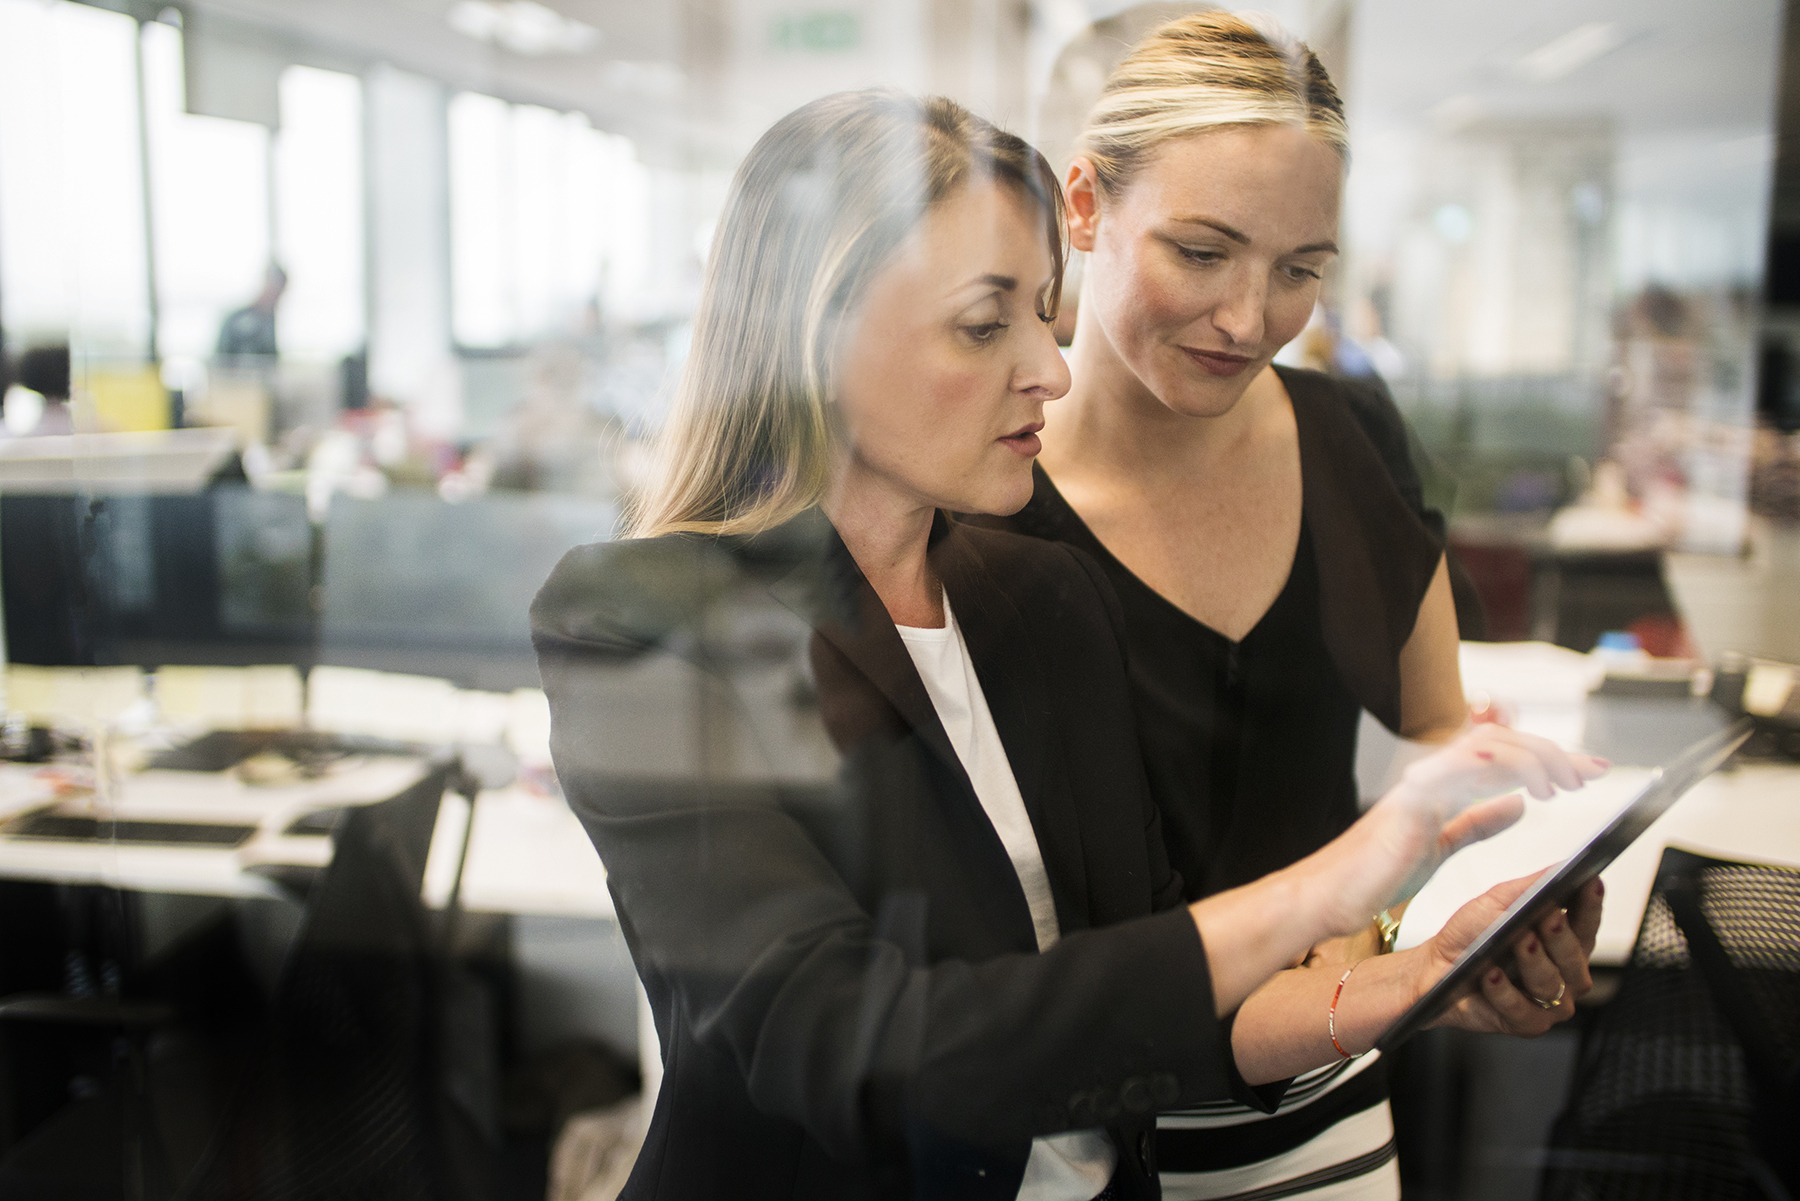 Businesswomen working together behind glass wall with reflections